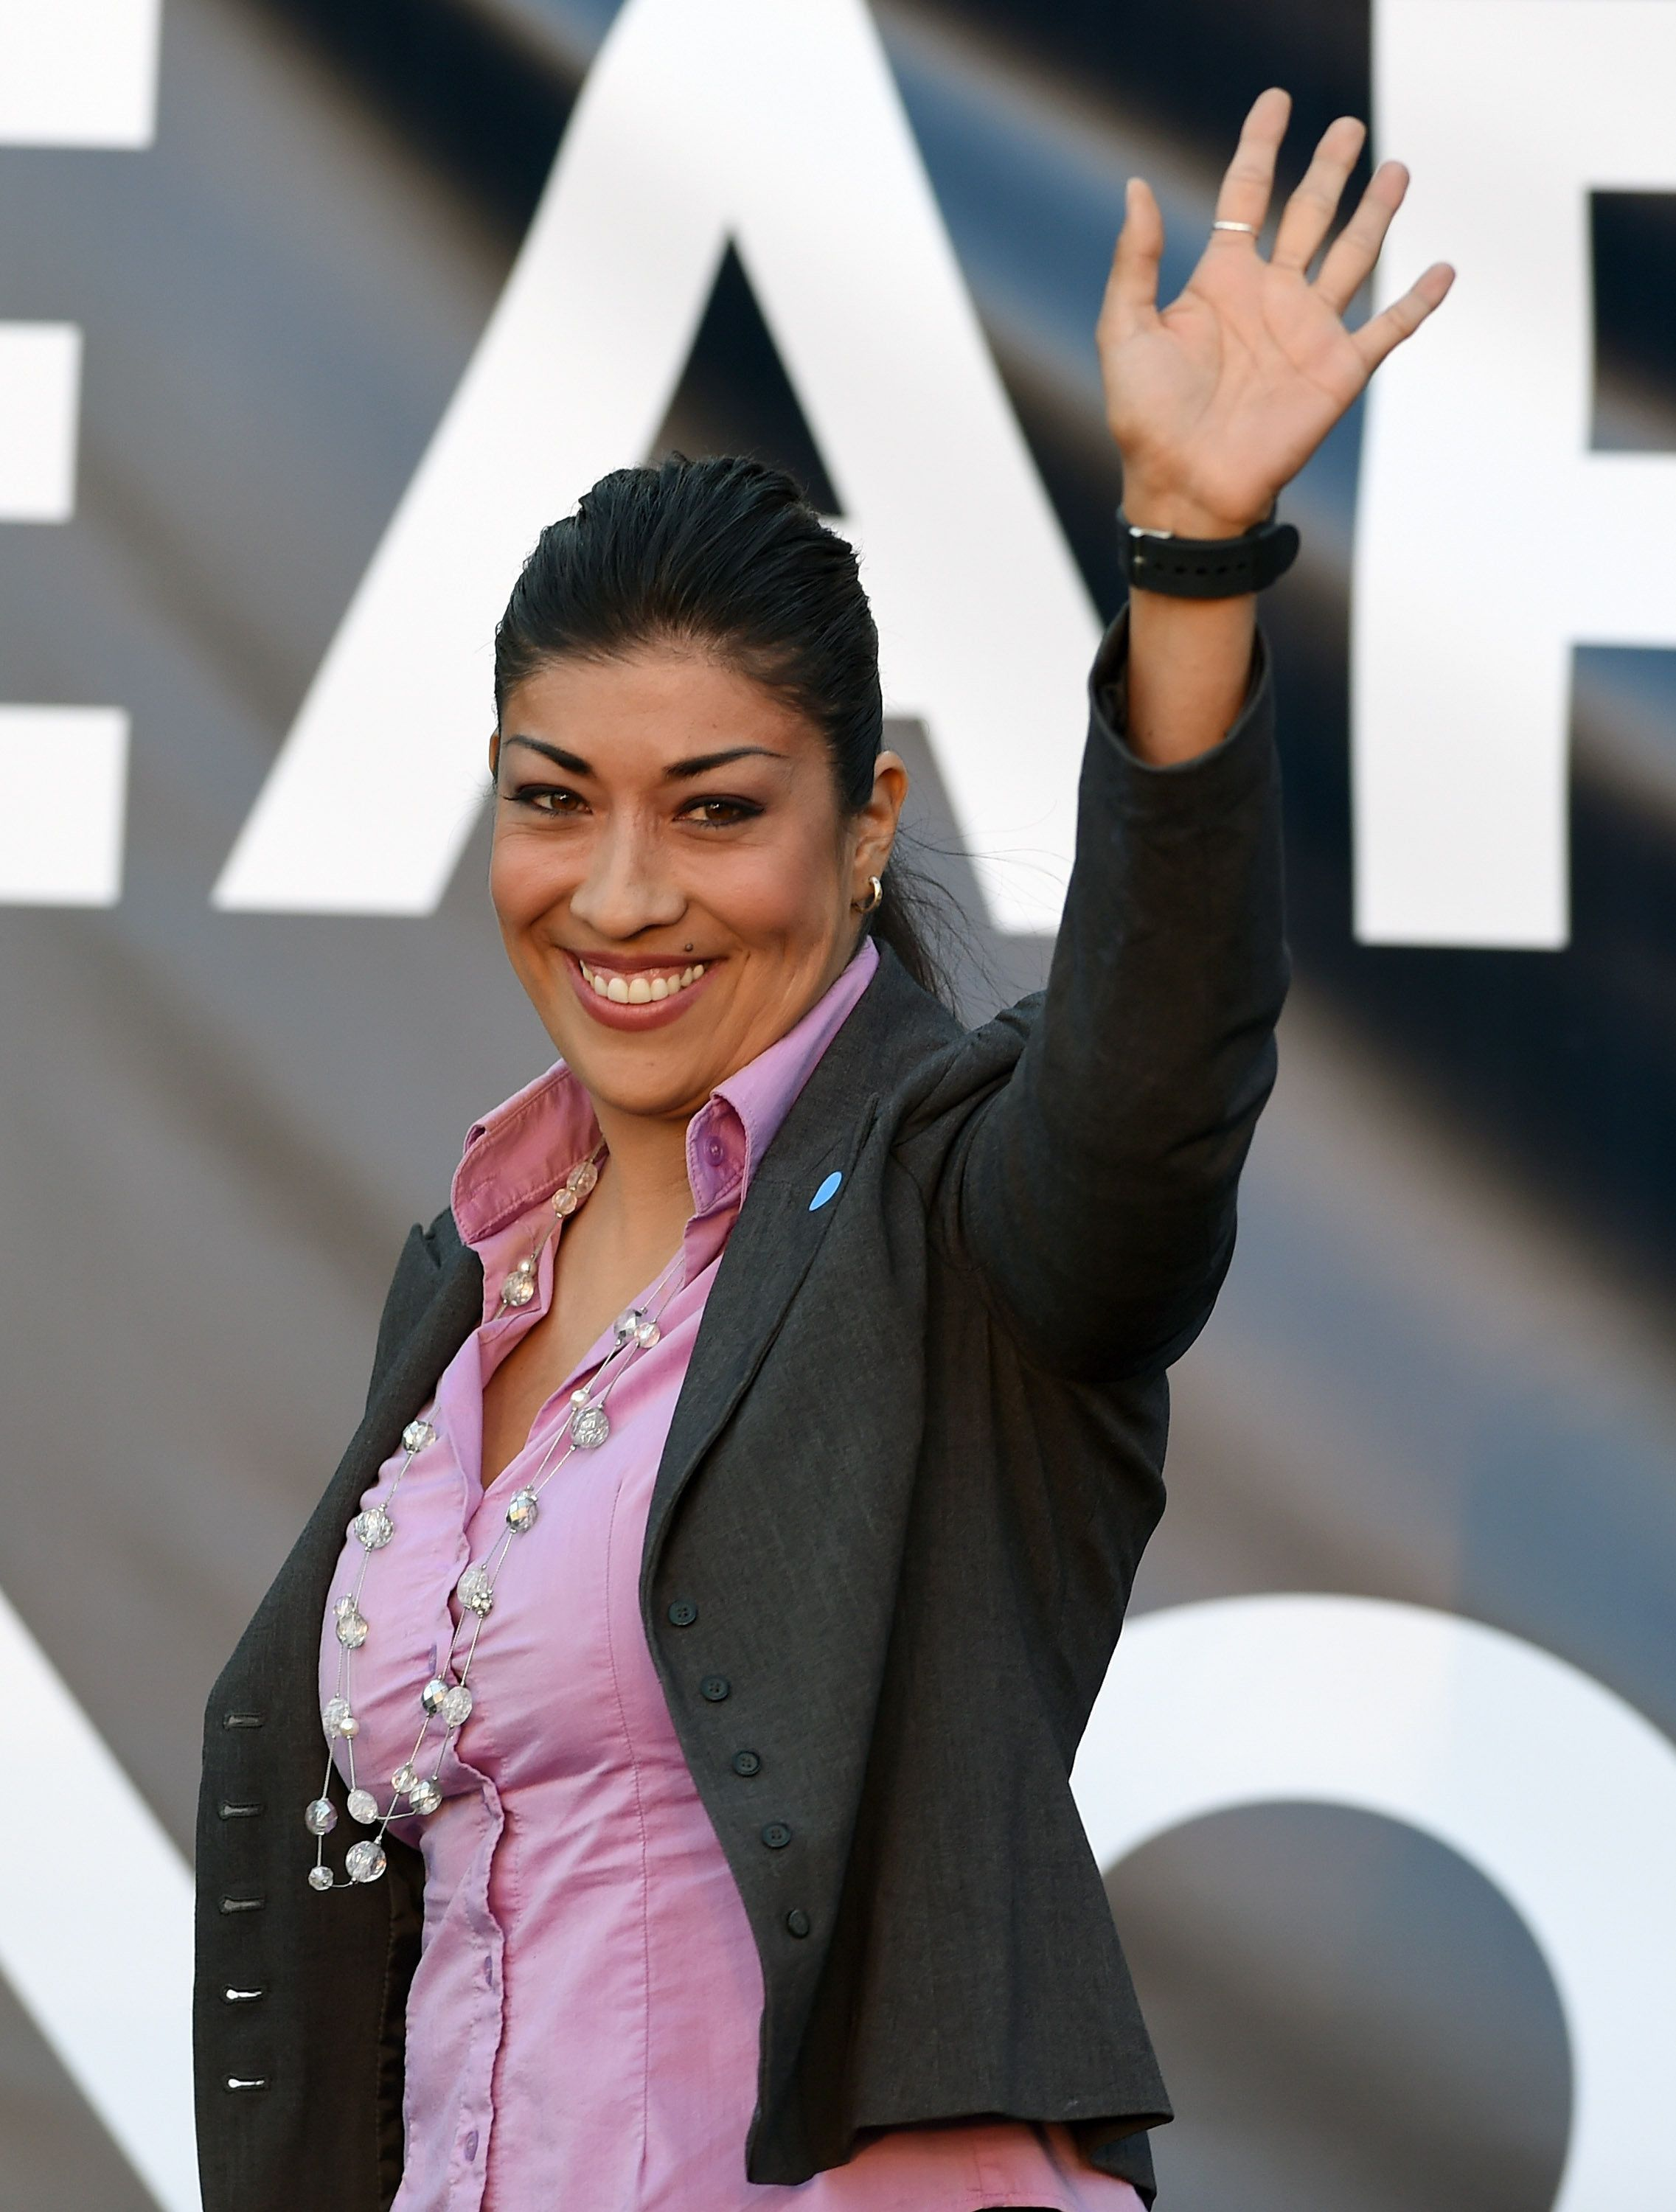 LAS VEGAS, NV - OCTOBER 28:  Democratic candidate for lieutenant governor and current Nevada Assemblywoman Lucy Flores (D-Las Vegas) waves as she is introduced at a get-out-the-vote rally at the Springs Preserve on October 28, 2014 in Las Vegas, Nevada. Former U.S. President Bill Clinton spoke at the event while stumping for Nevada Democrats one week before the November 4th election.  (Photo by Ethan Miller/Getty Images)